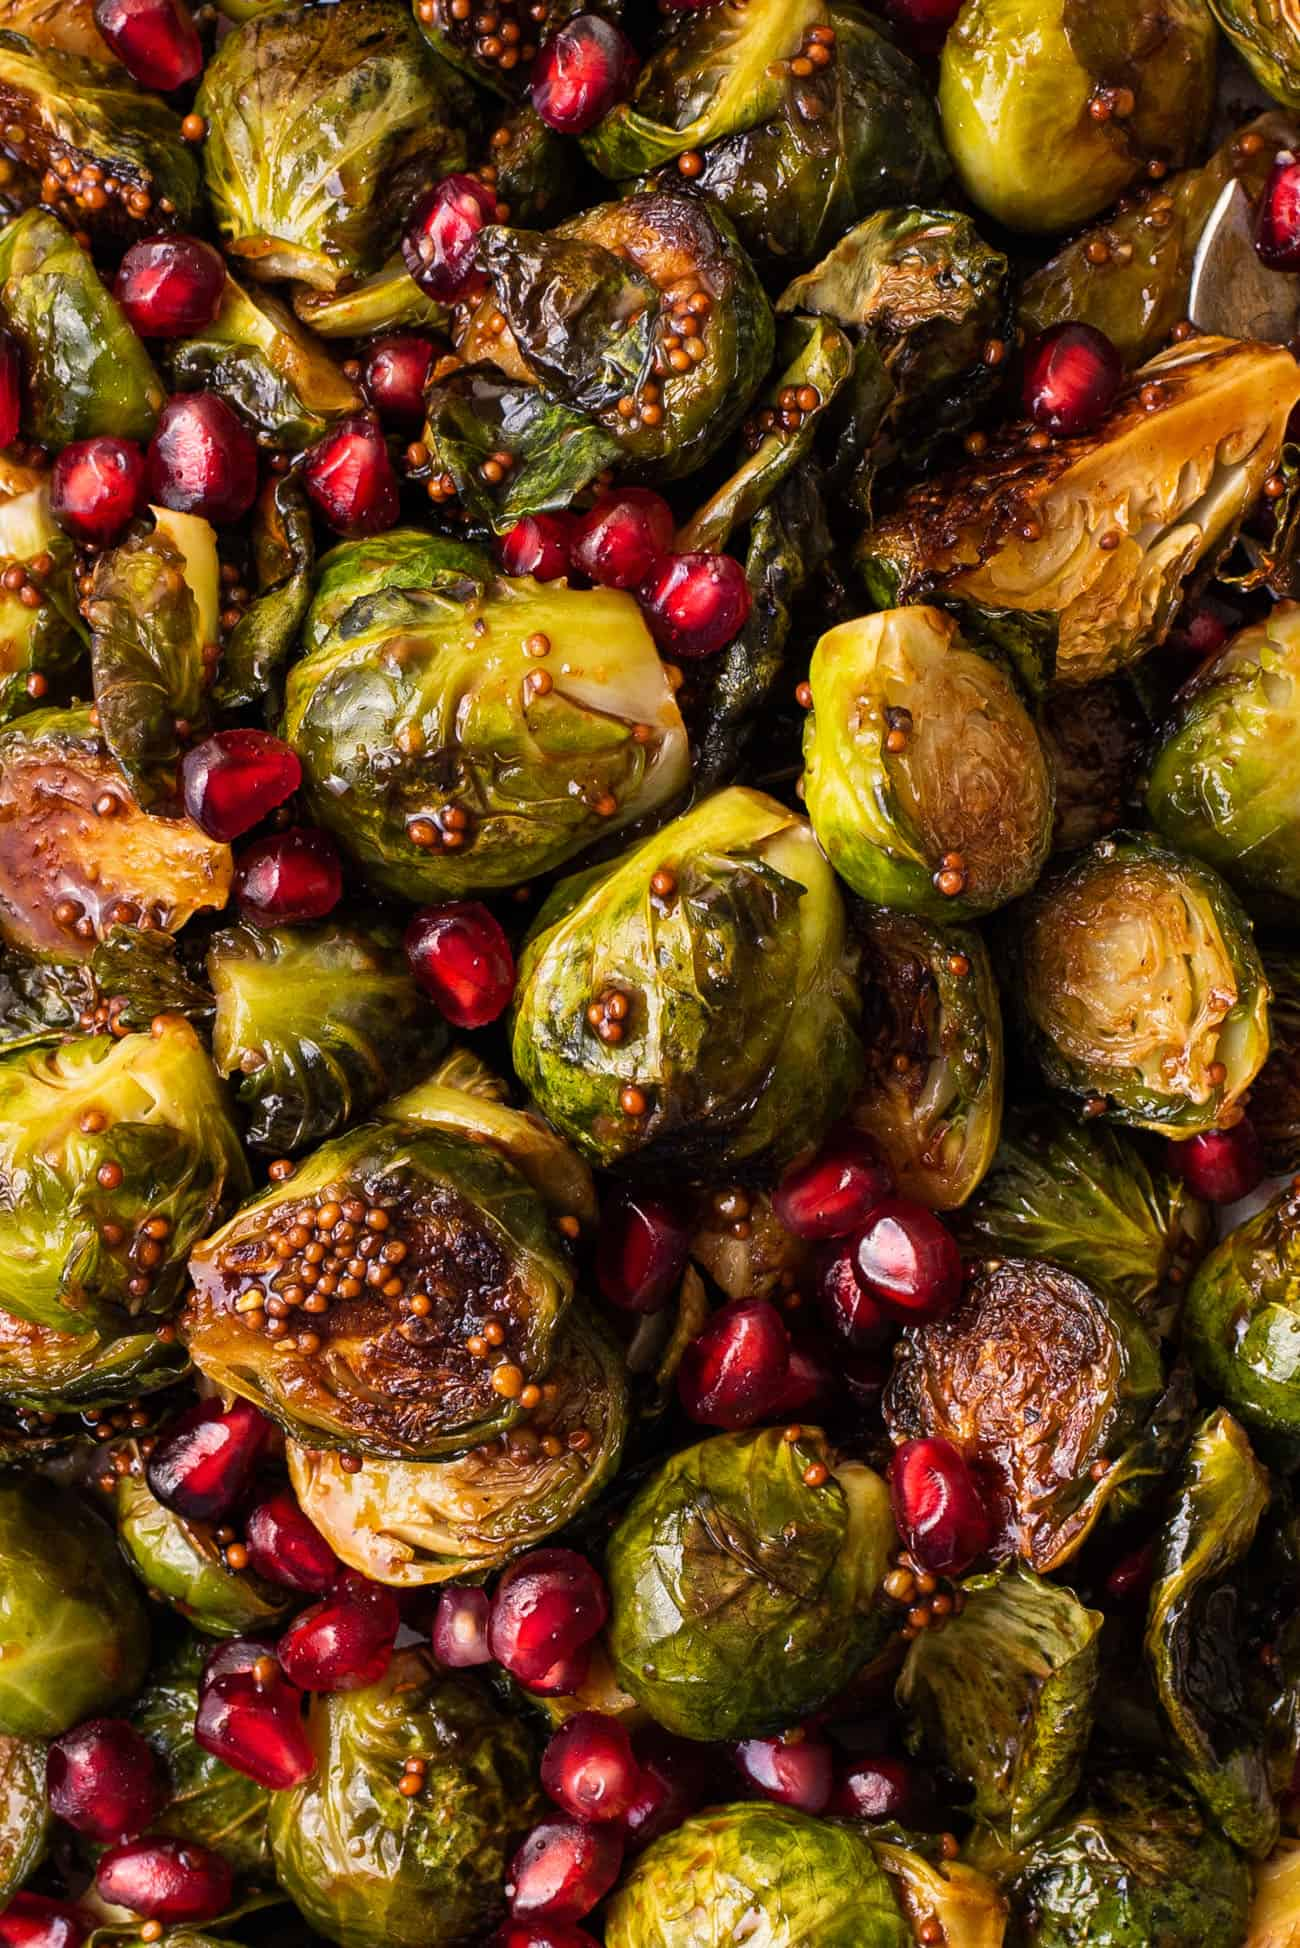 Roasted balsamic Brussels sprouts with in a mustard glaze with pomegranate seeds